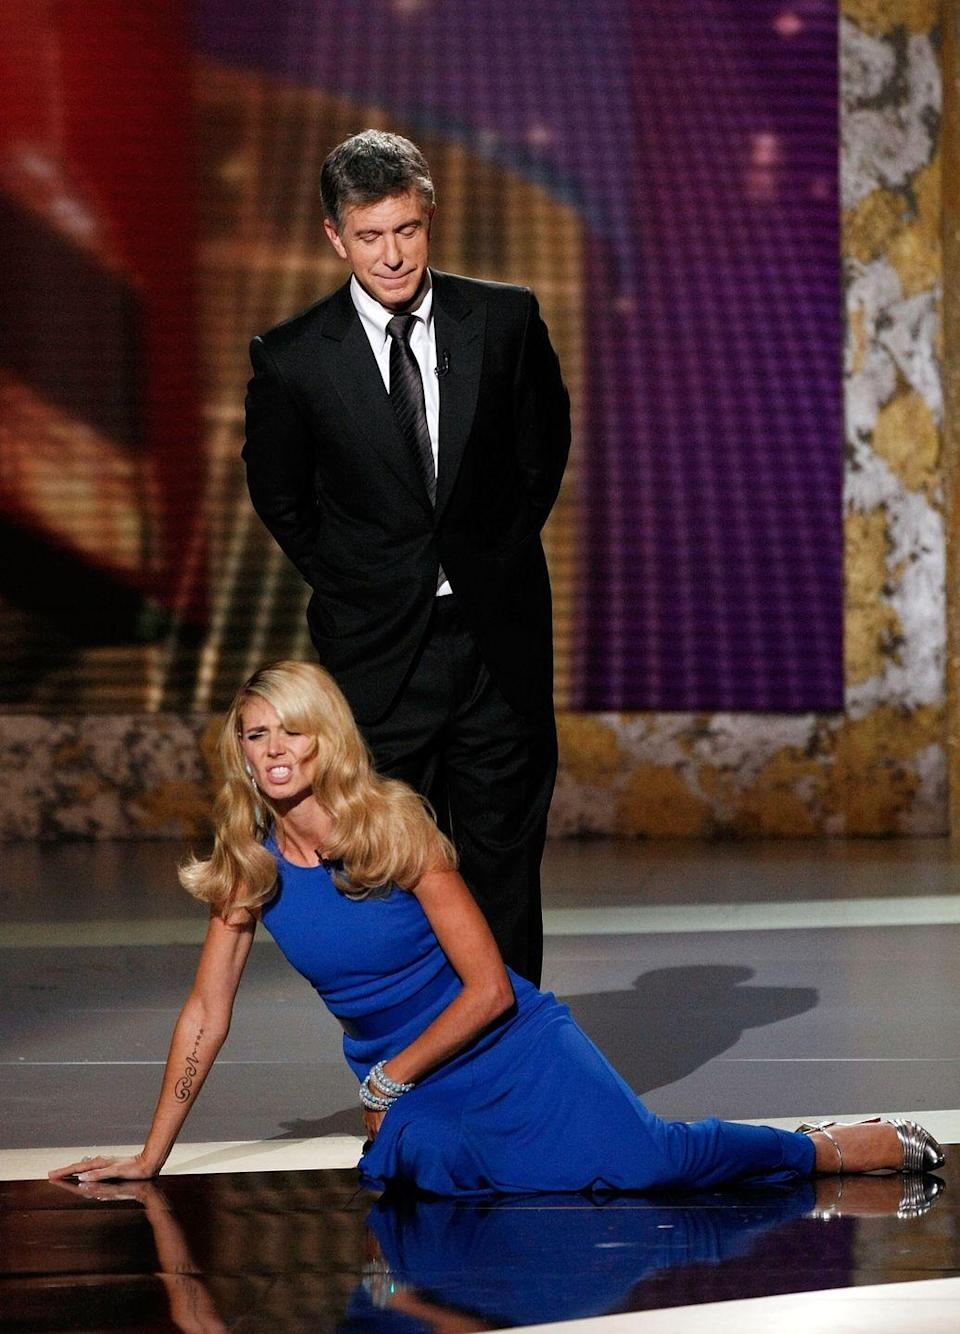 <p>In 2008, a bunch of different reality TV stars hosted the Emmys. At one point, Heidi Klum and Tom Bergeron were on stage. During a skit they hadn't rehearsed, Klum pretended to swoon and fall into Bergeron's arms. Unfortunately, he dropped her, and she hit the ground hard. Later on backstage, Klum showed off a very bad bruise. </p>